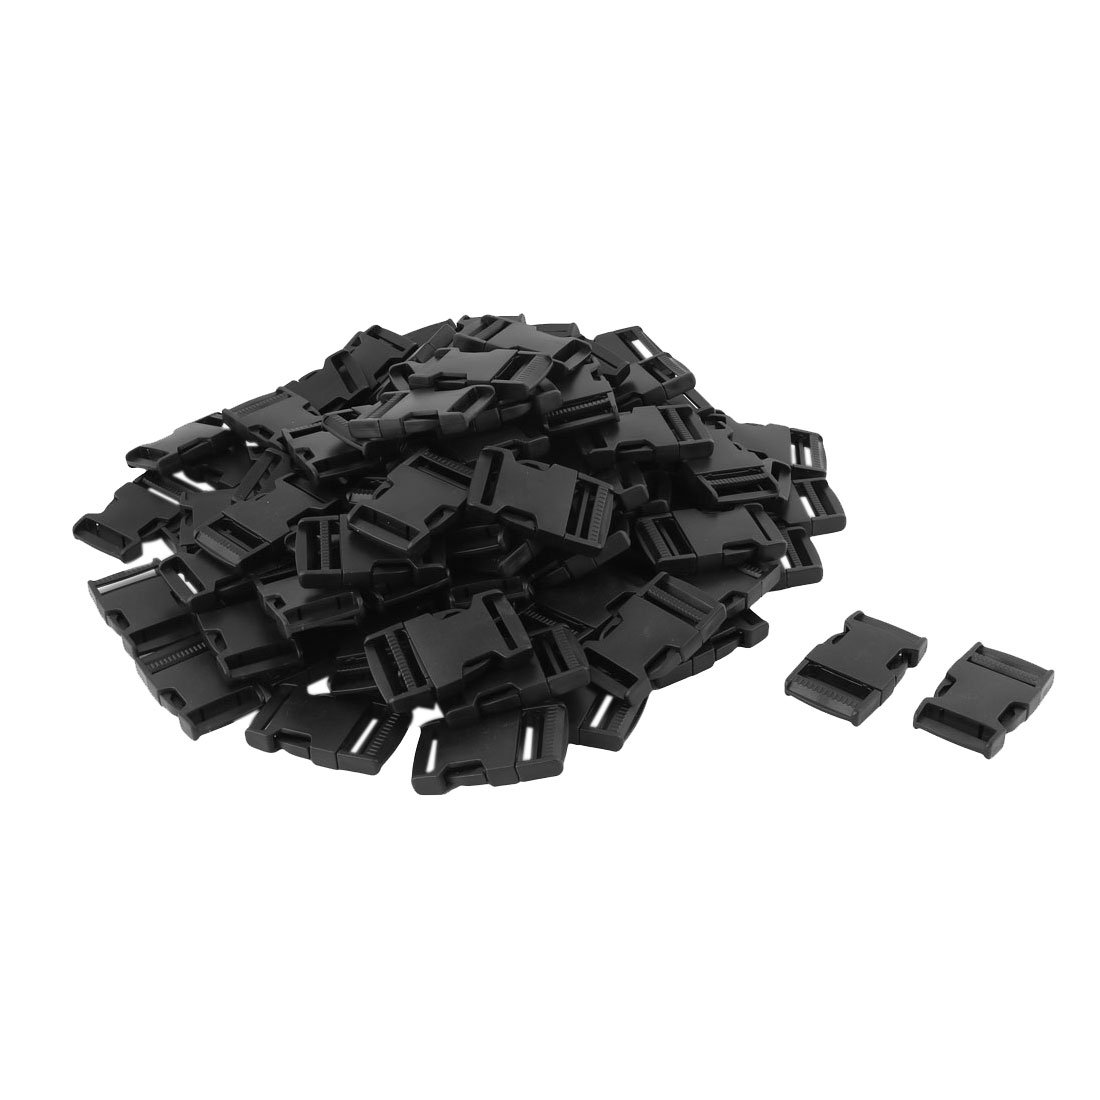 uxcell Plastic Packback Bag Accessory Webbing Adjustable Quick Release Buckle 100pcs Black